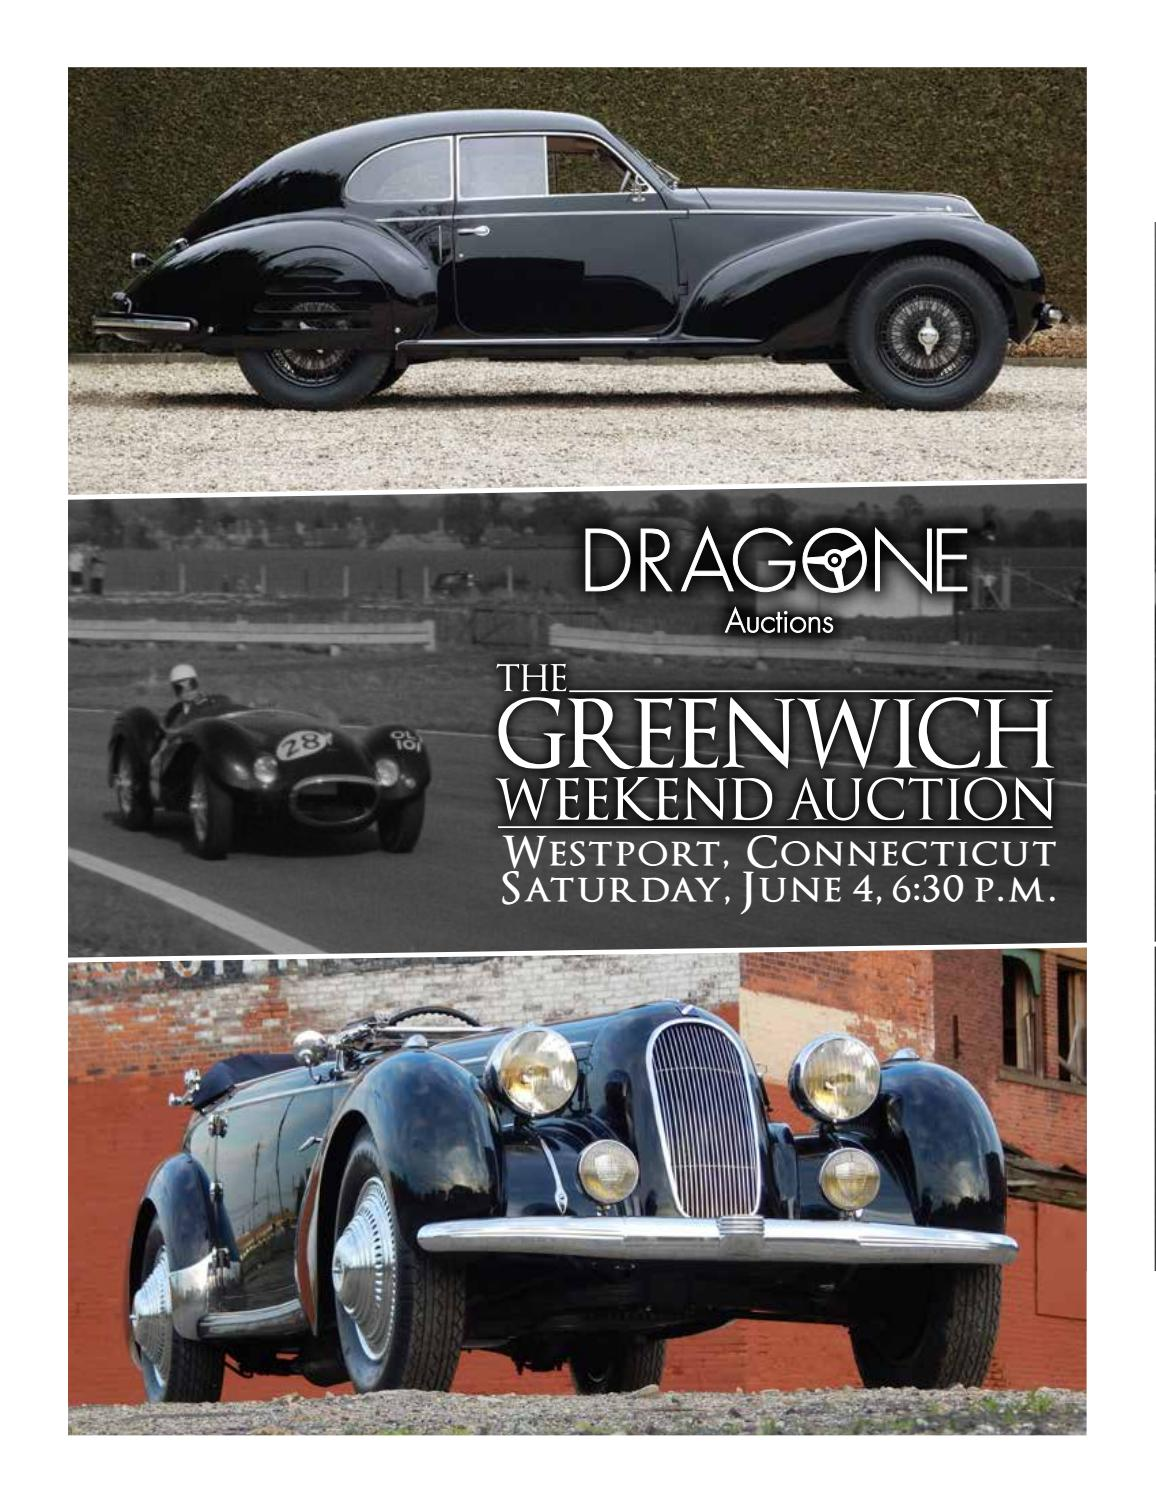 Dragones Greenwich Weekend Auction 2016 Catalog By Dragone Auctions